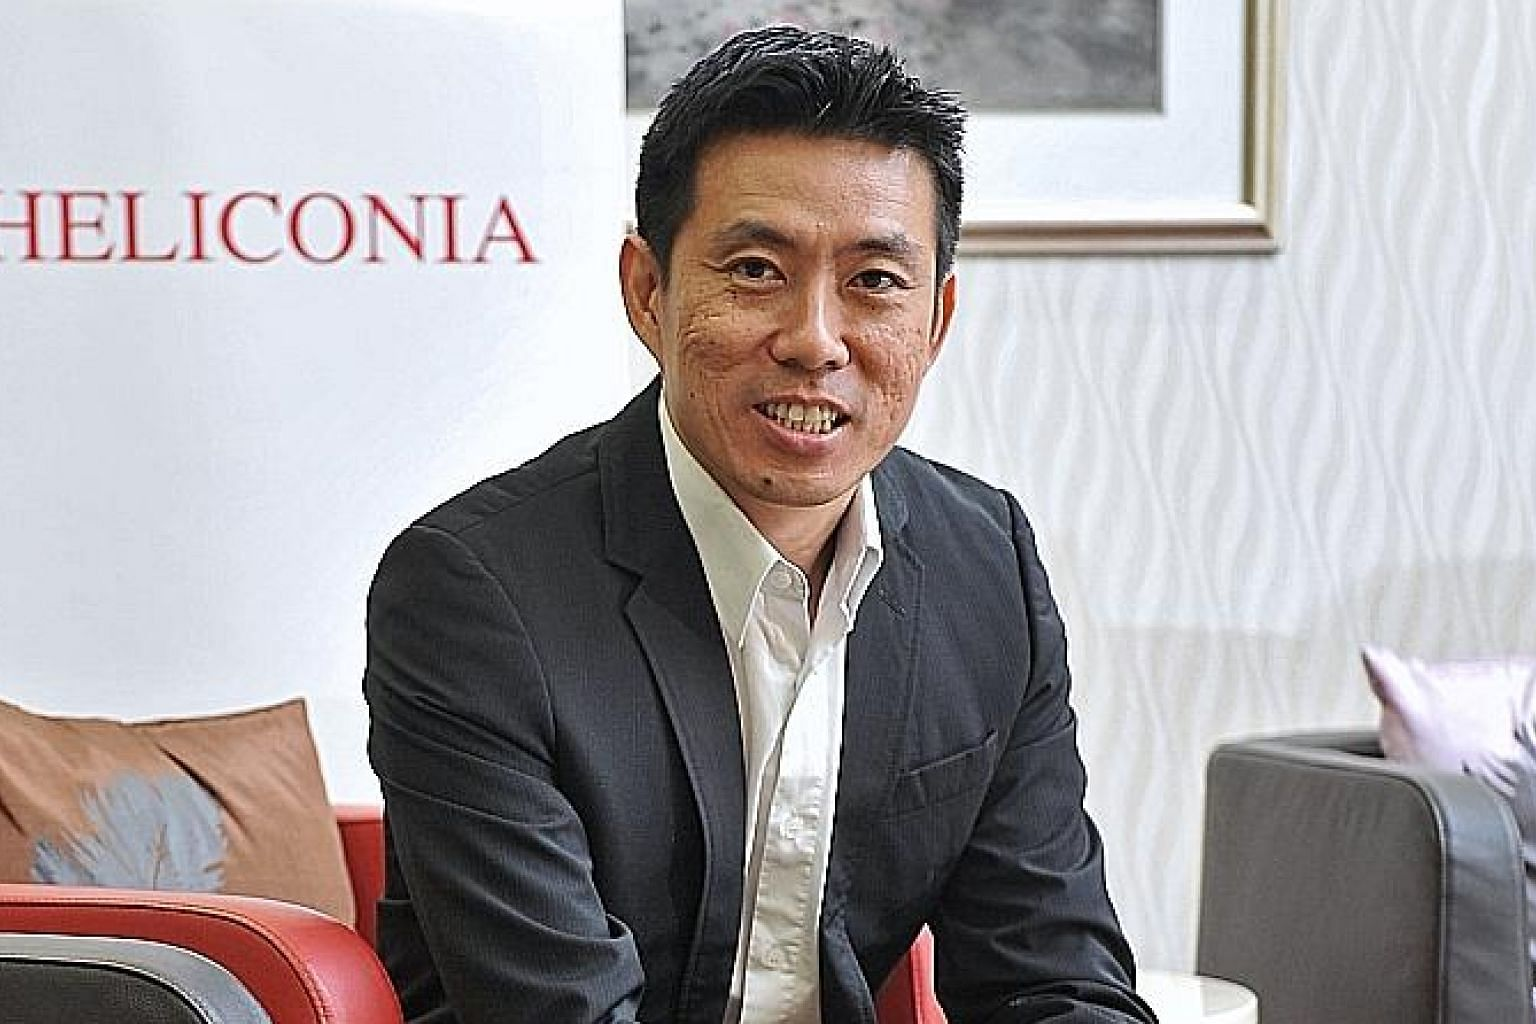 Heliconia Capital Management has requested that chairman Lim How Teck be appointed a non-executive director of CSE Global.